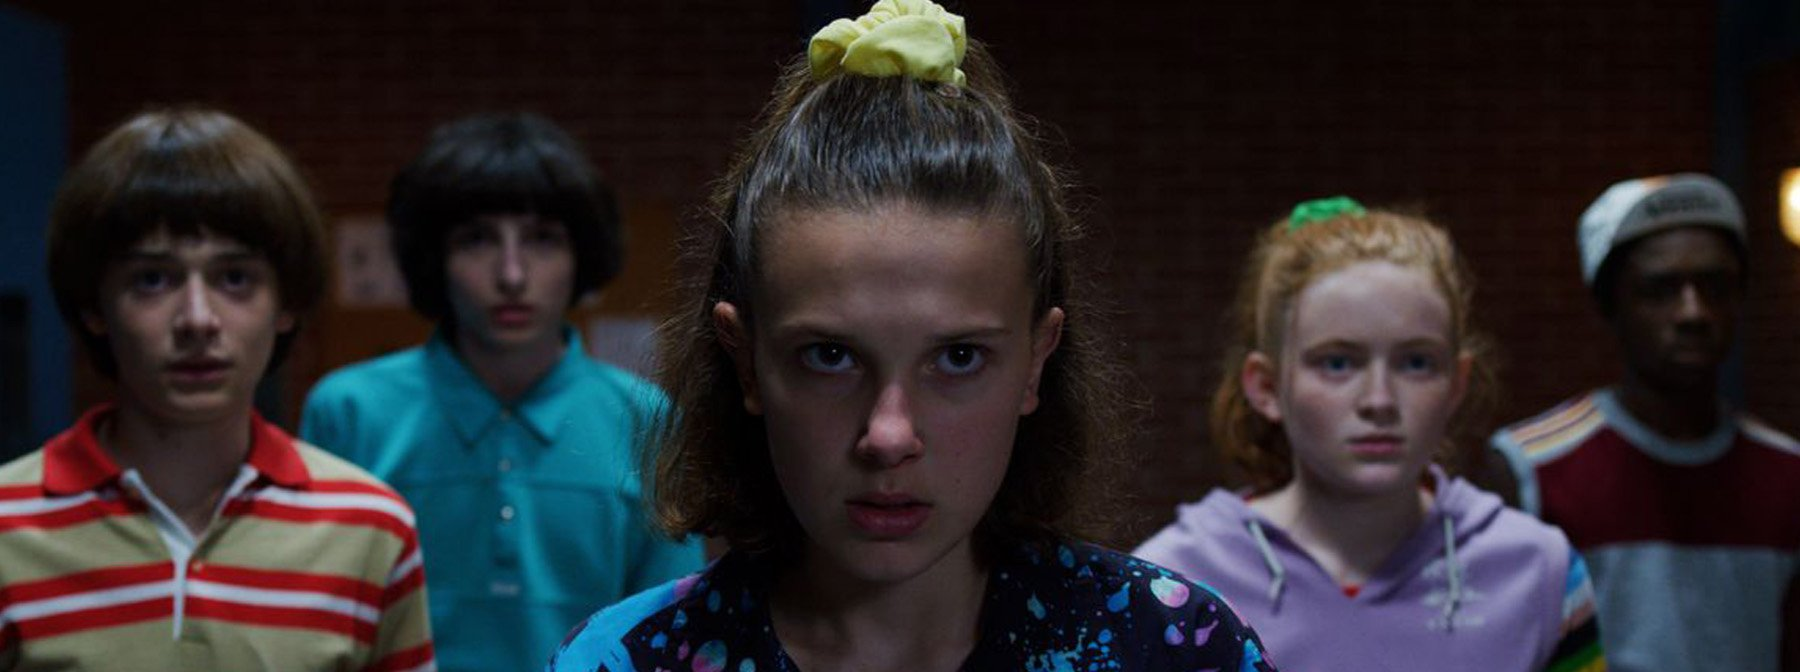 Stranger Things 4: Everything We Know So Far